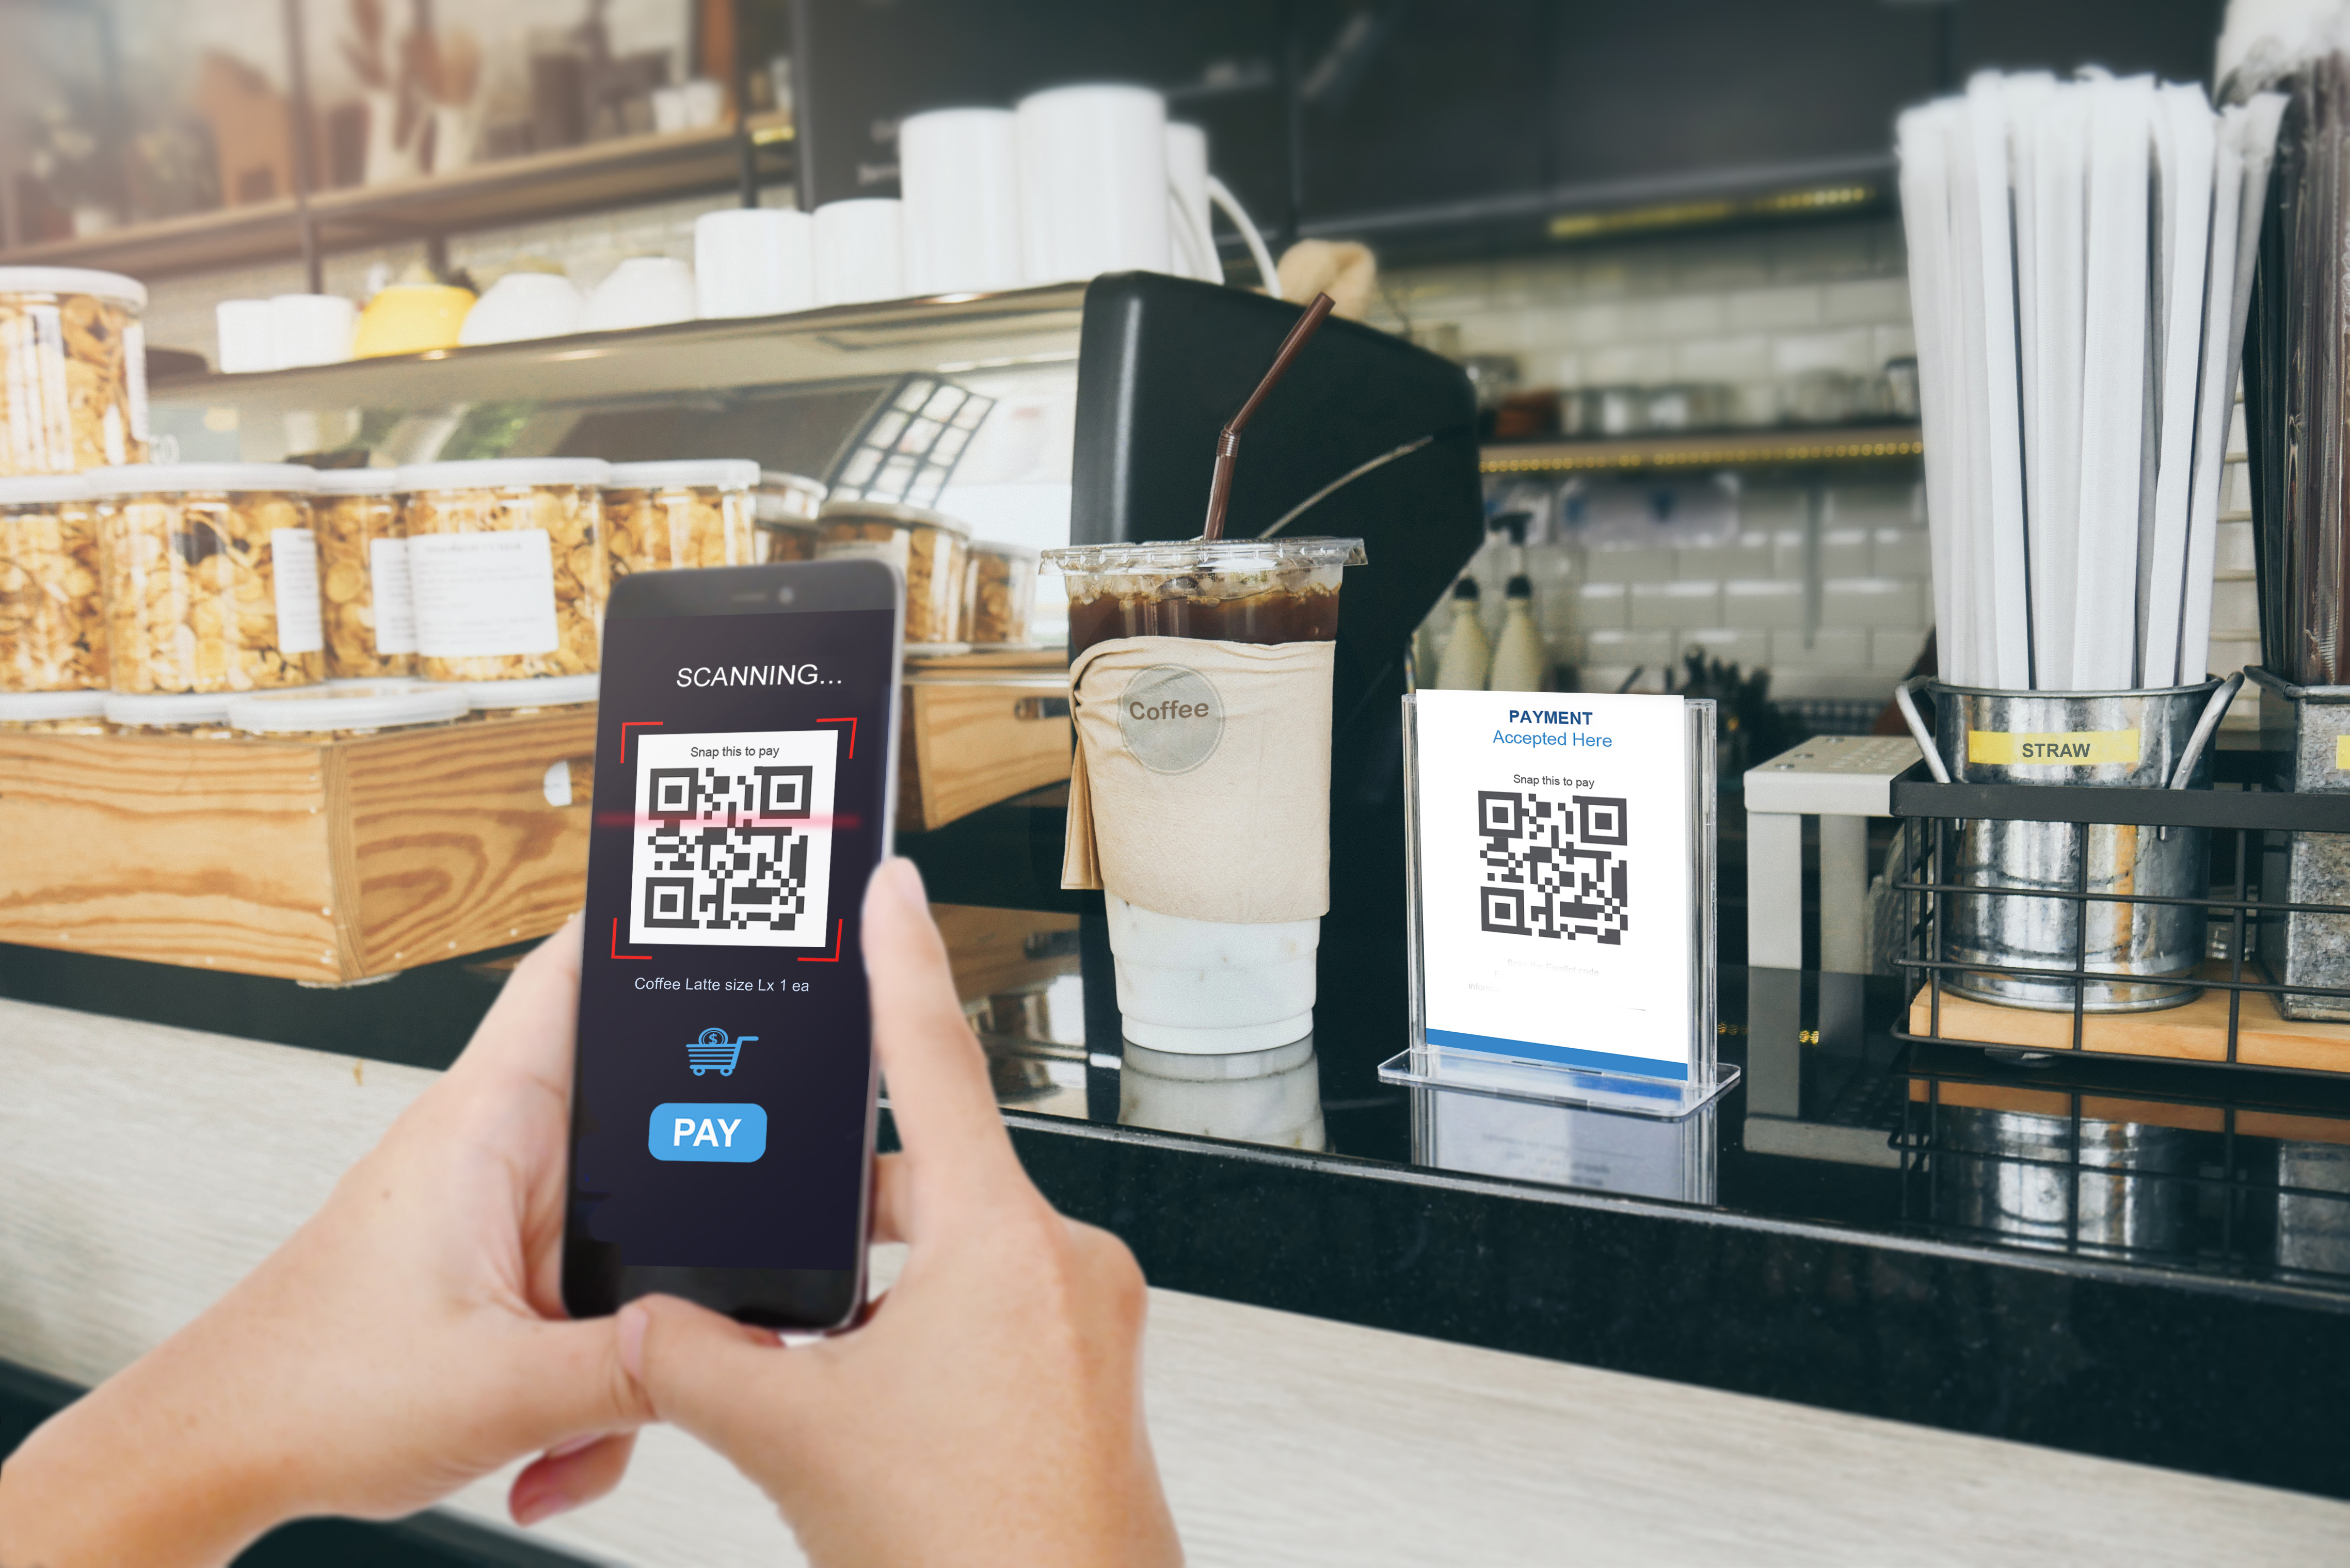 [POST] Mobile Payments